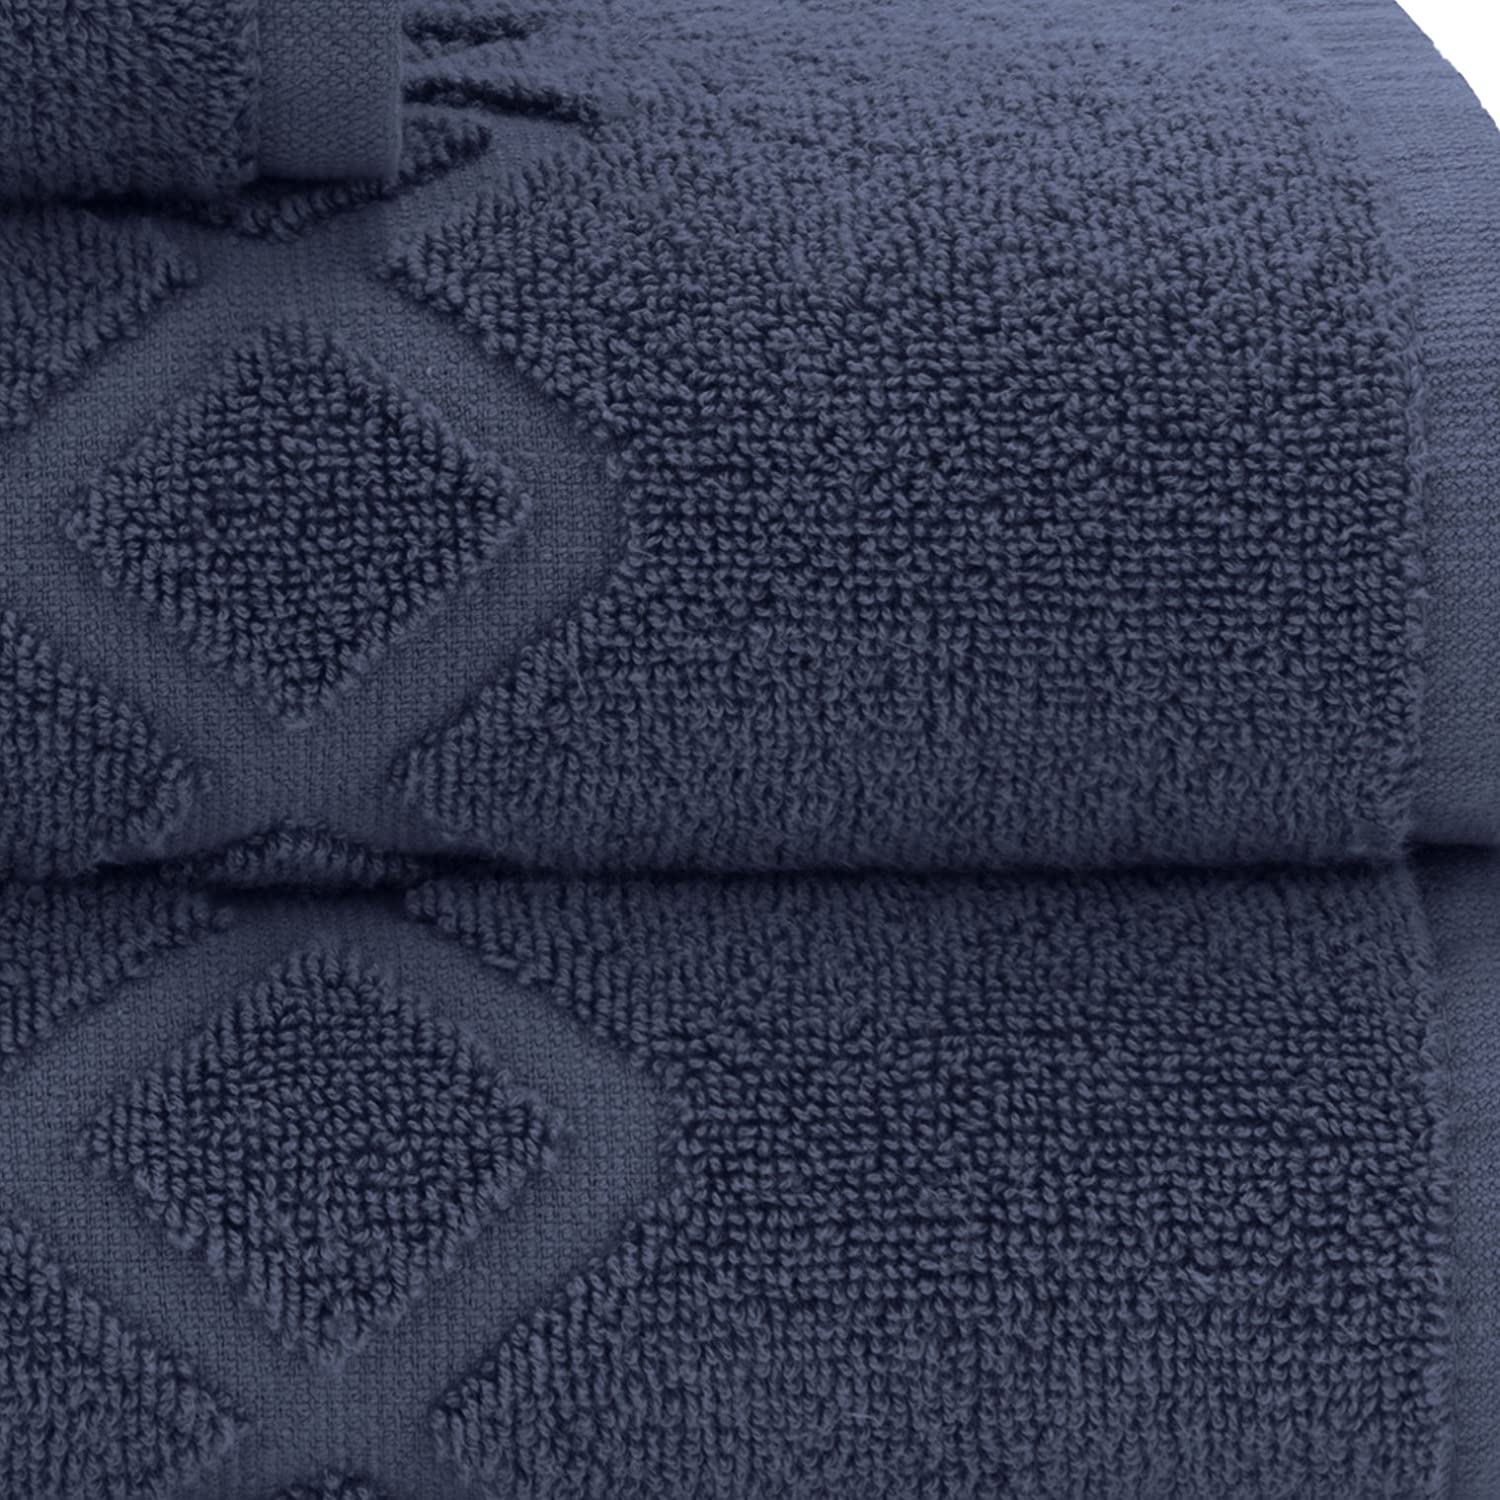 Briarwood Home 100/% Cotton Luxury Soft Ringspun 6 Piece Bath Towel Set in White Sand TWBSRS049